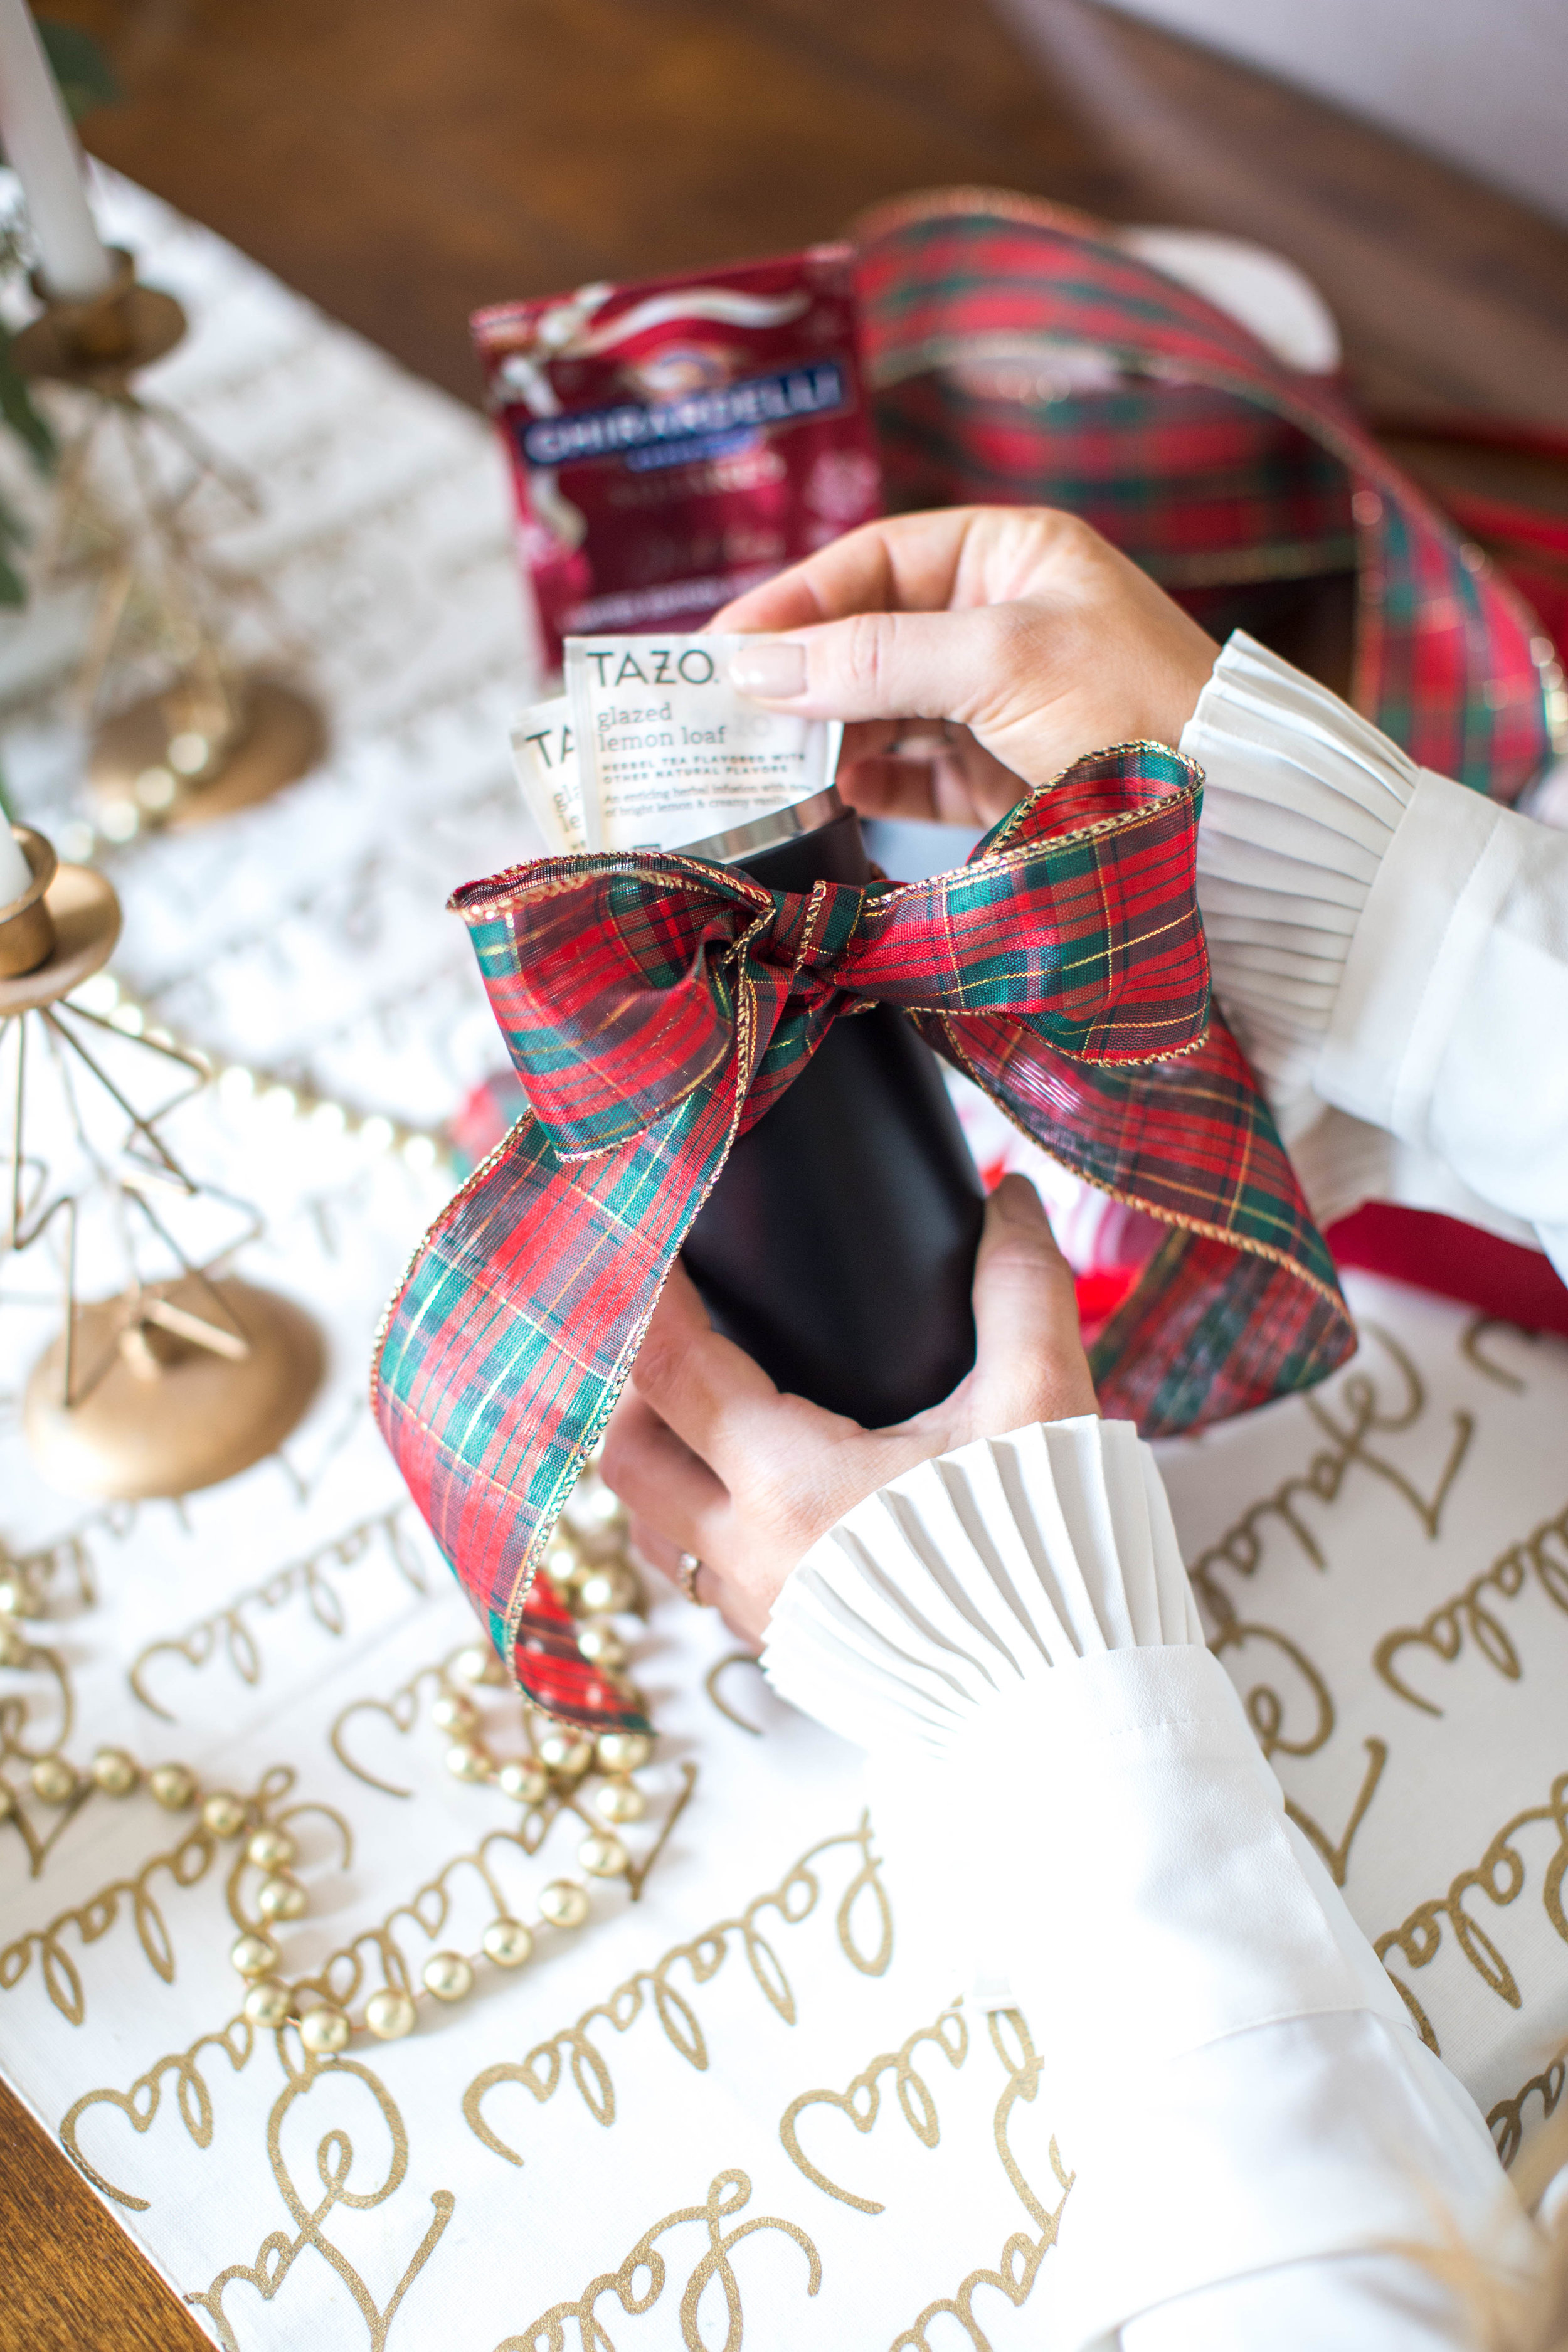 5 Ways to Spruce Up Your Gift Giving